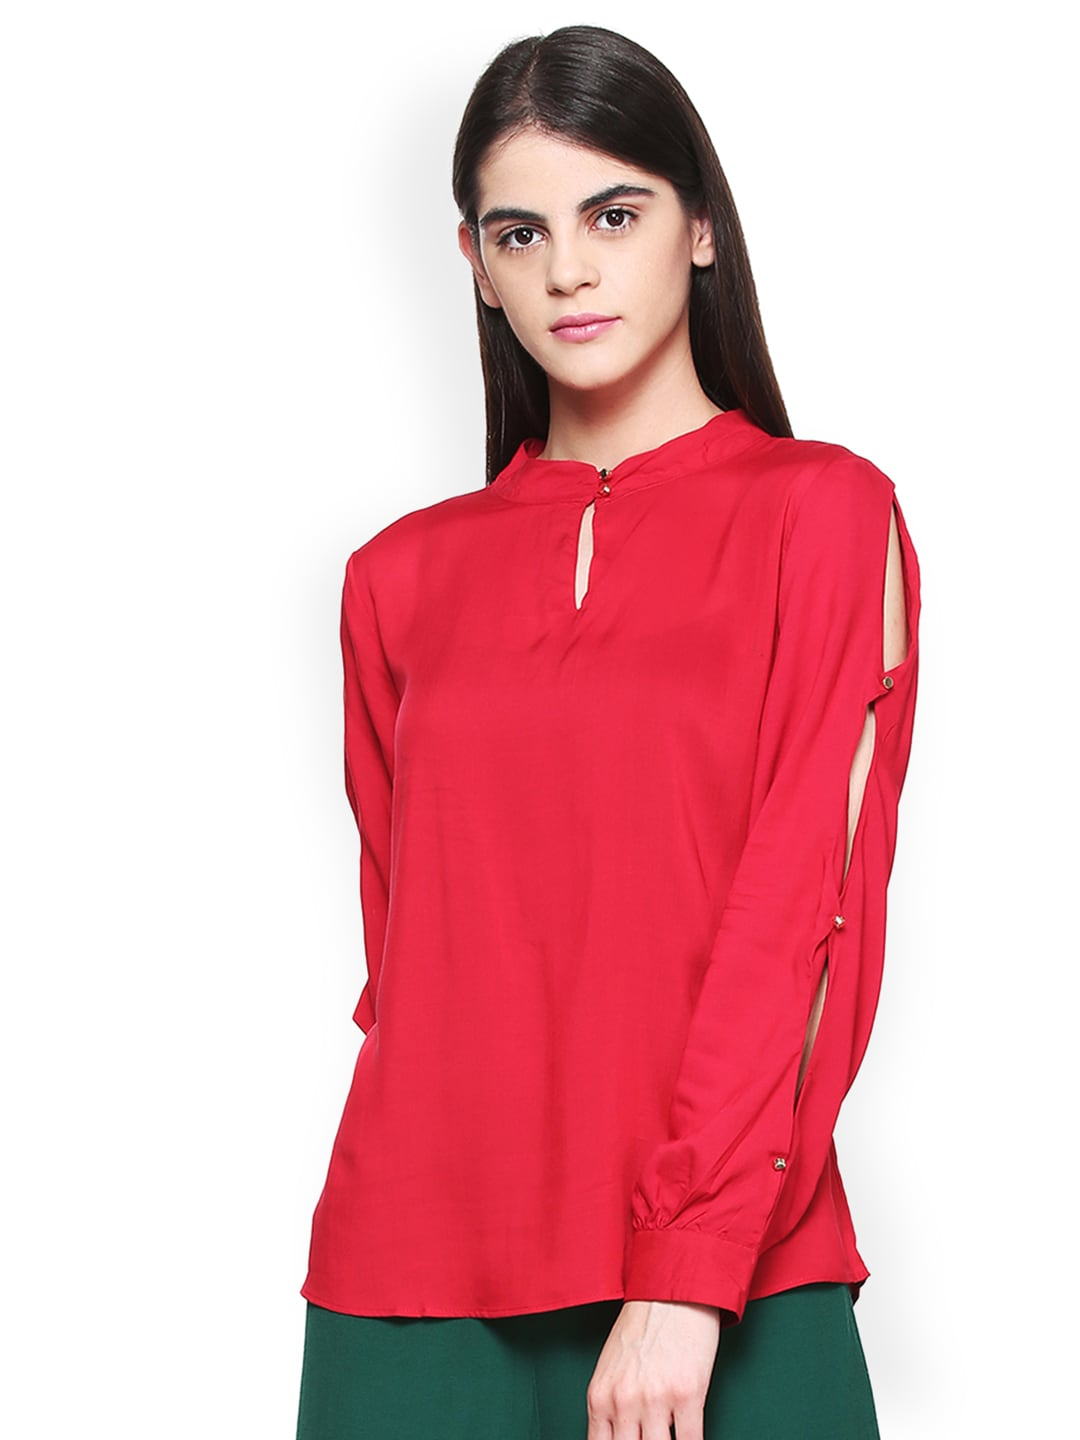 556bfa31b8a46 Red Top - Buy Red Tops Online at Best Price in India